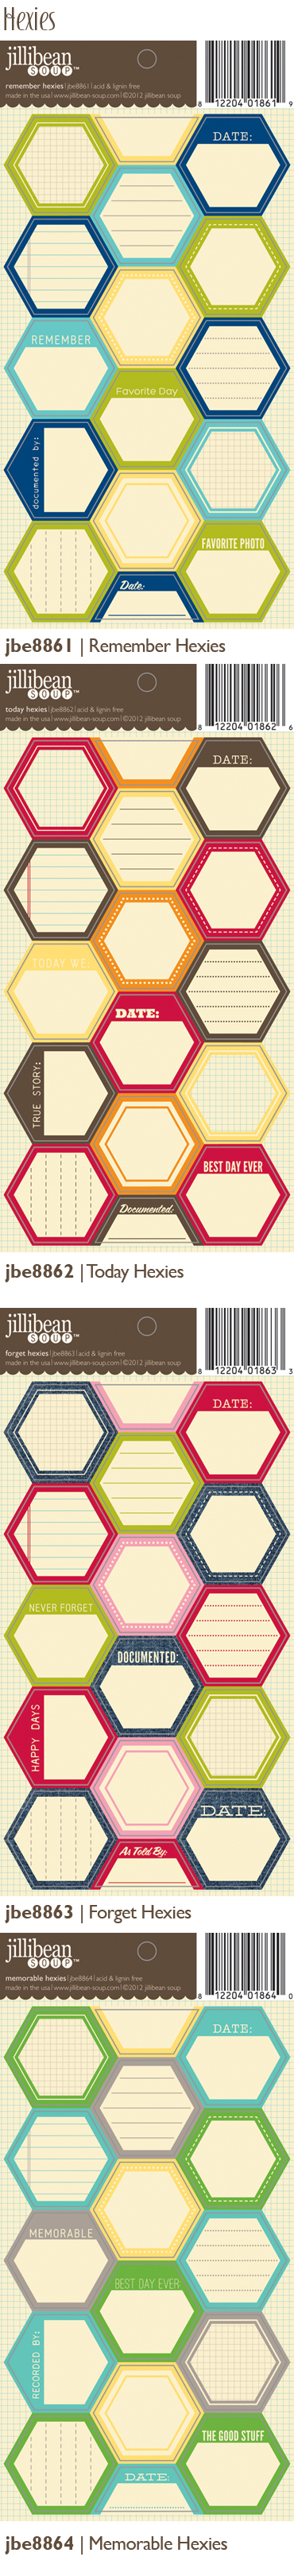 Love the hexagon label stickers from Jillibean Soup! #StudioCalicoPinToWin